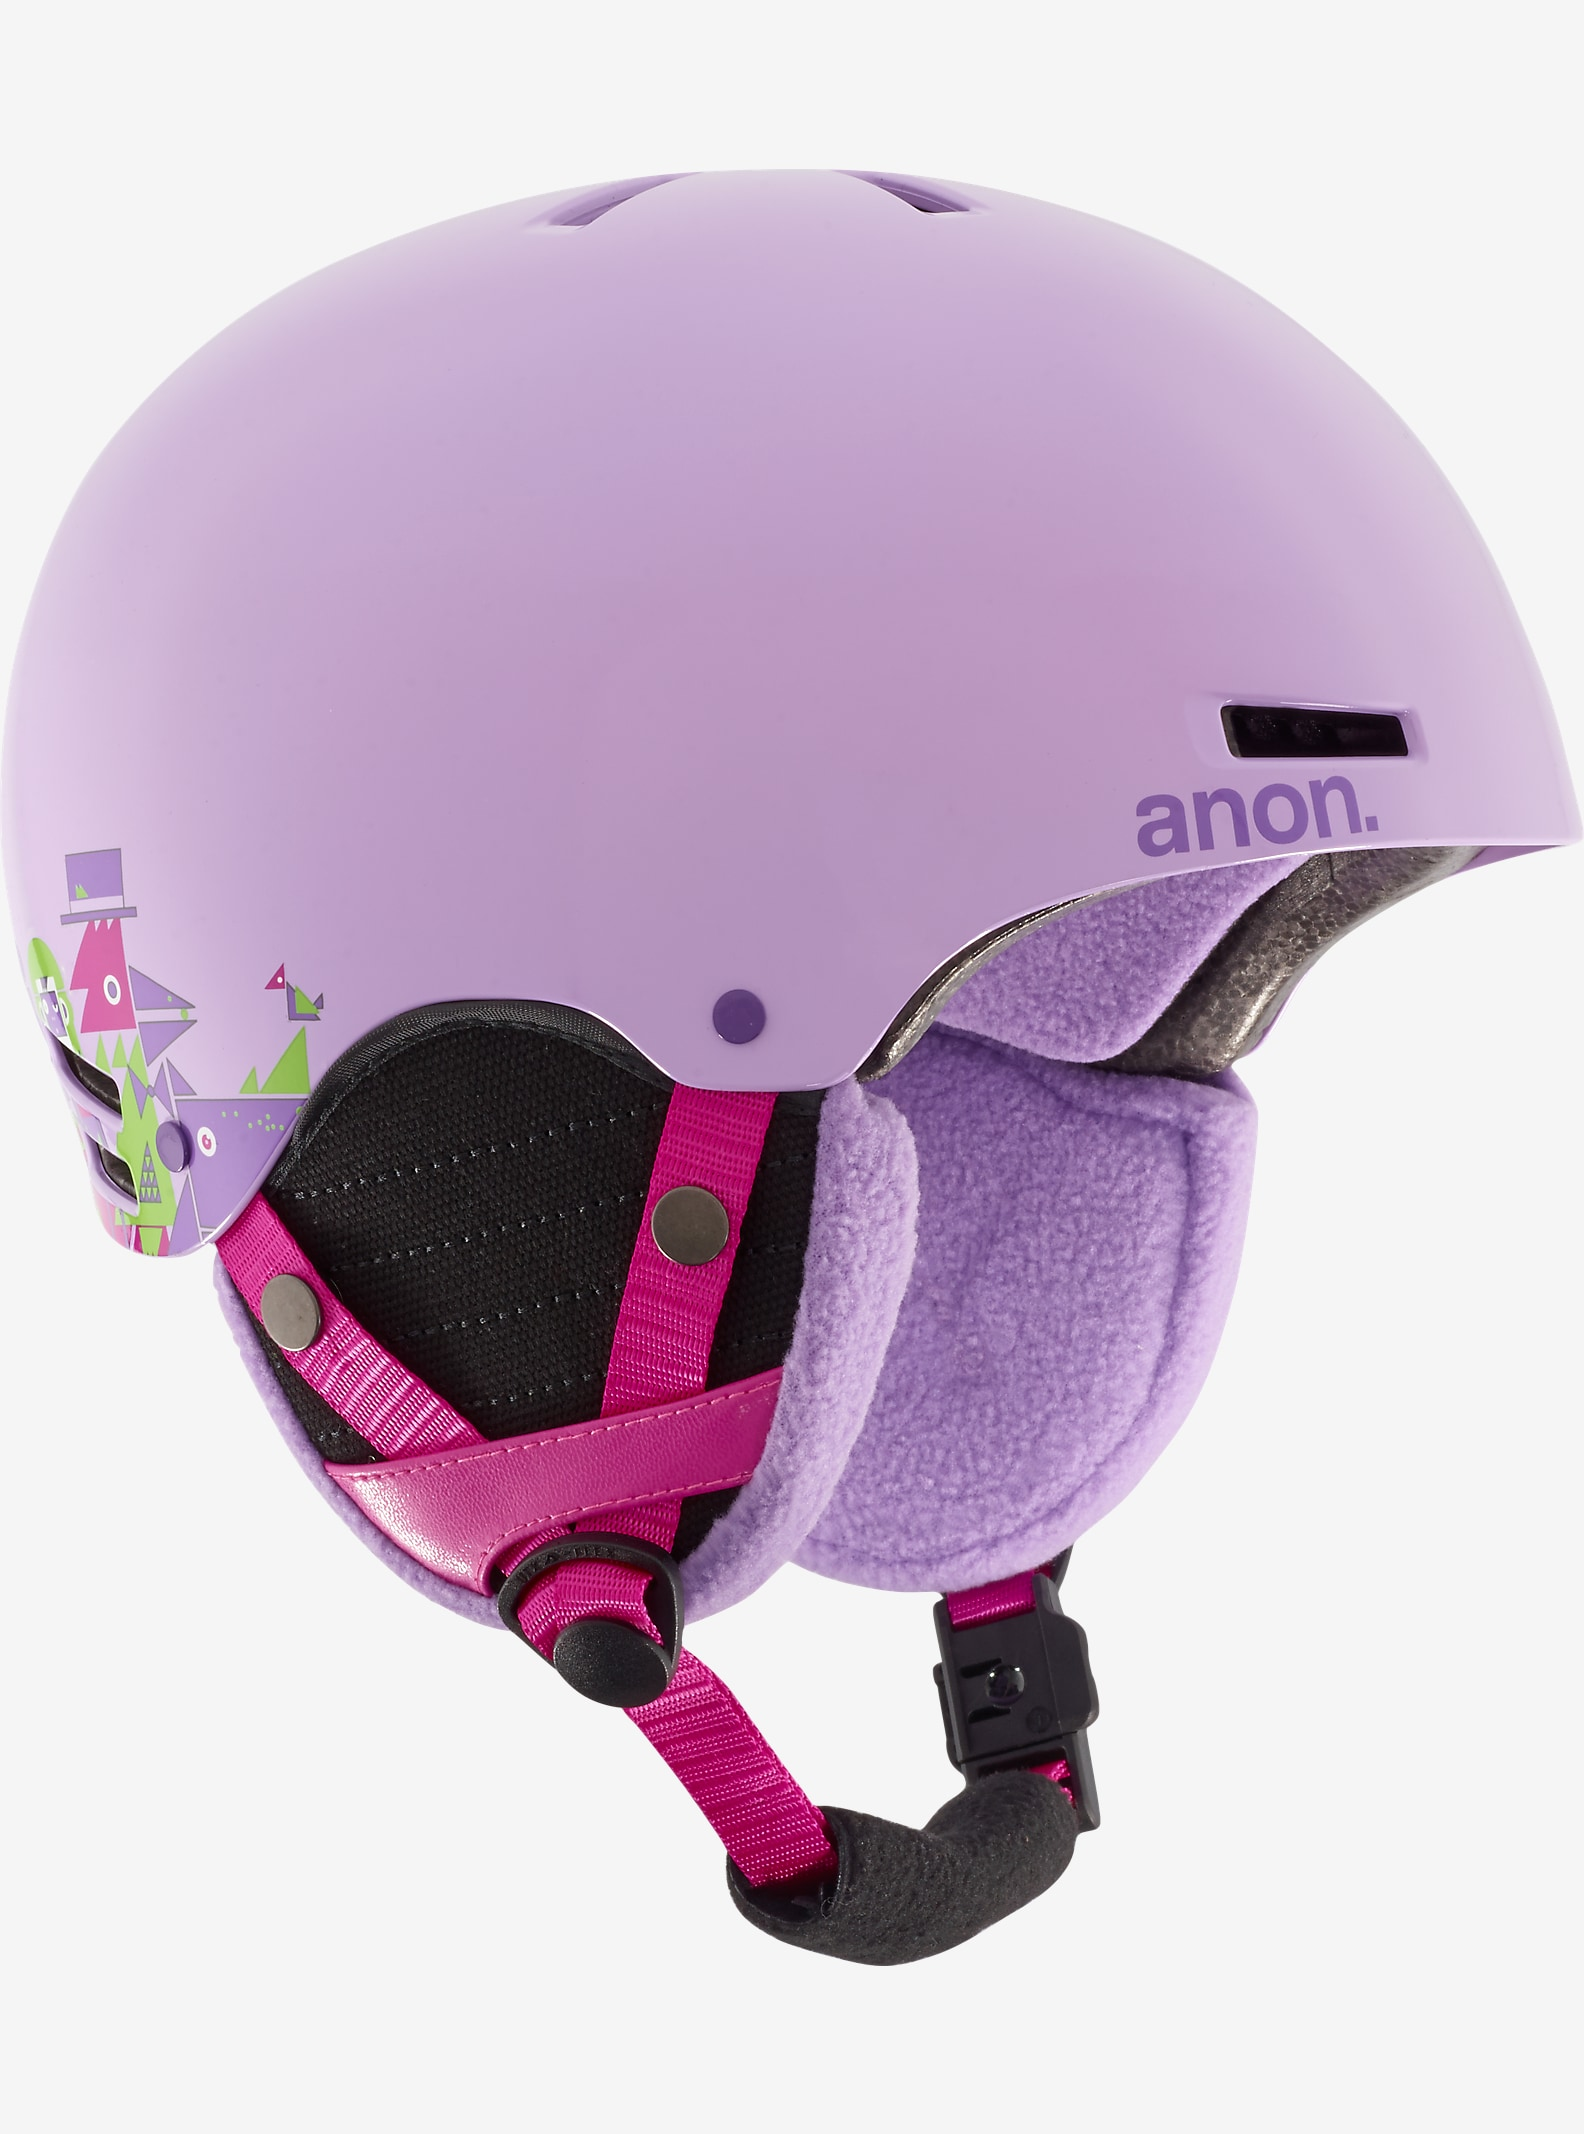 anon. - Casque Rime fille affichage en Wildlife Purple